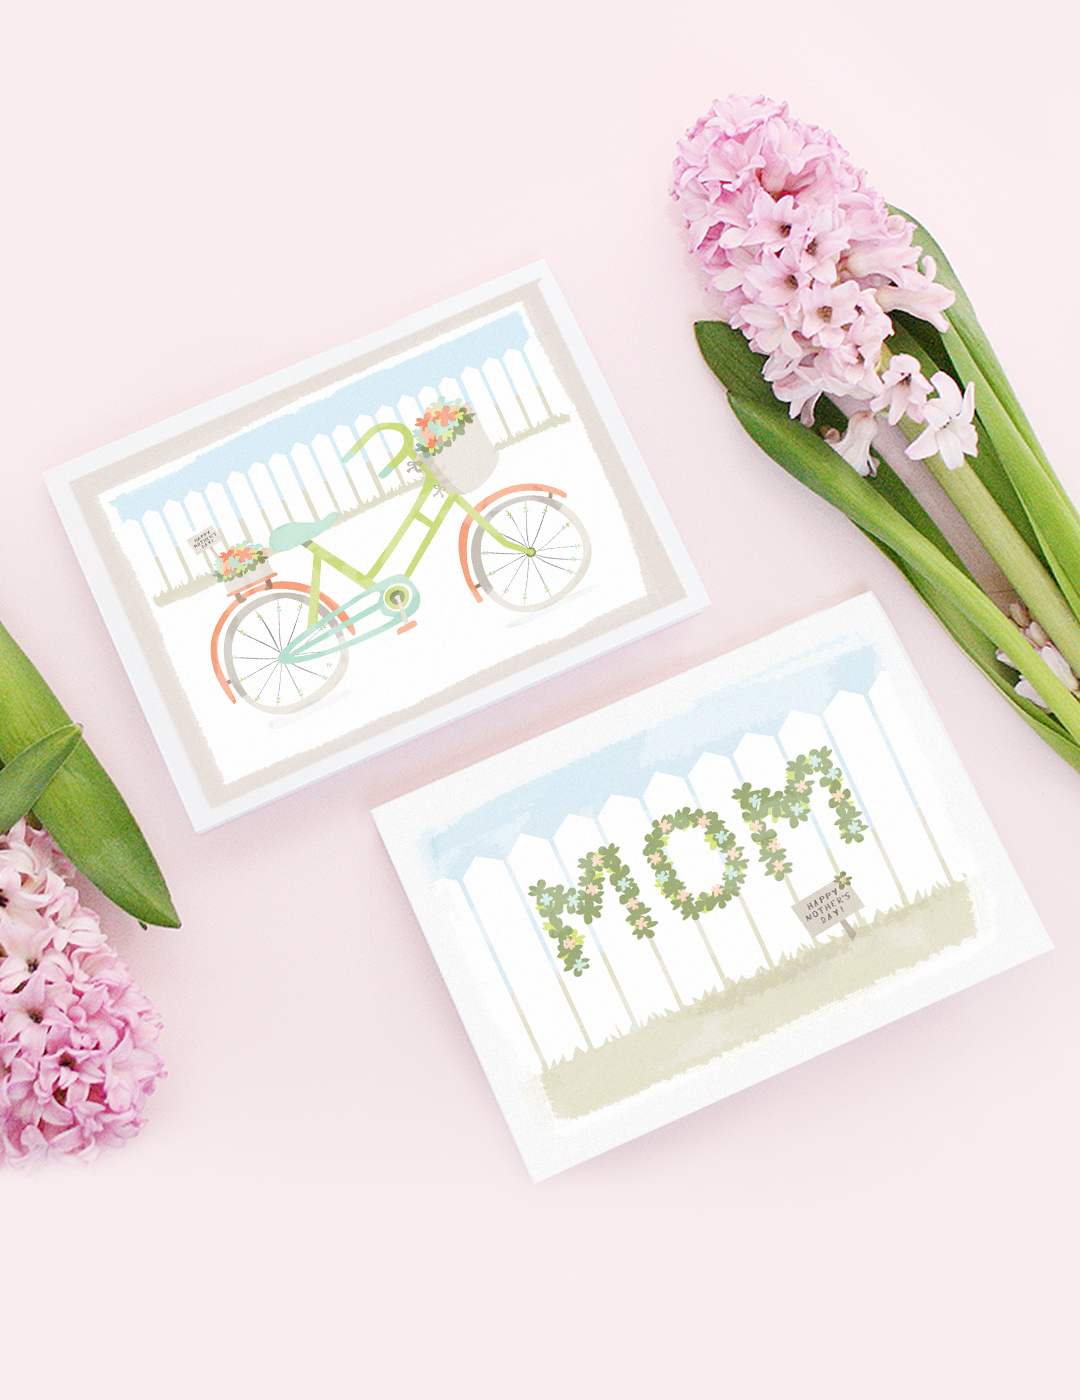 Free Printable! Mother's Day Card - Love Vividly